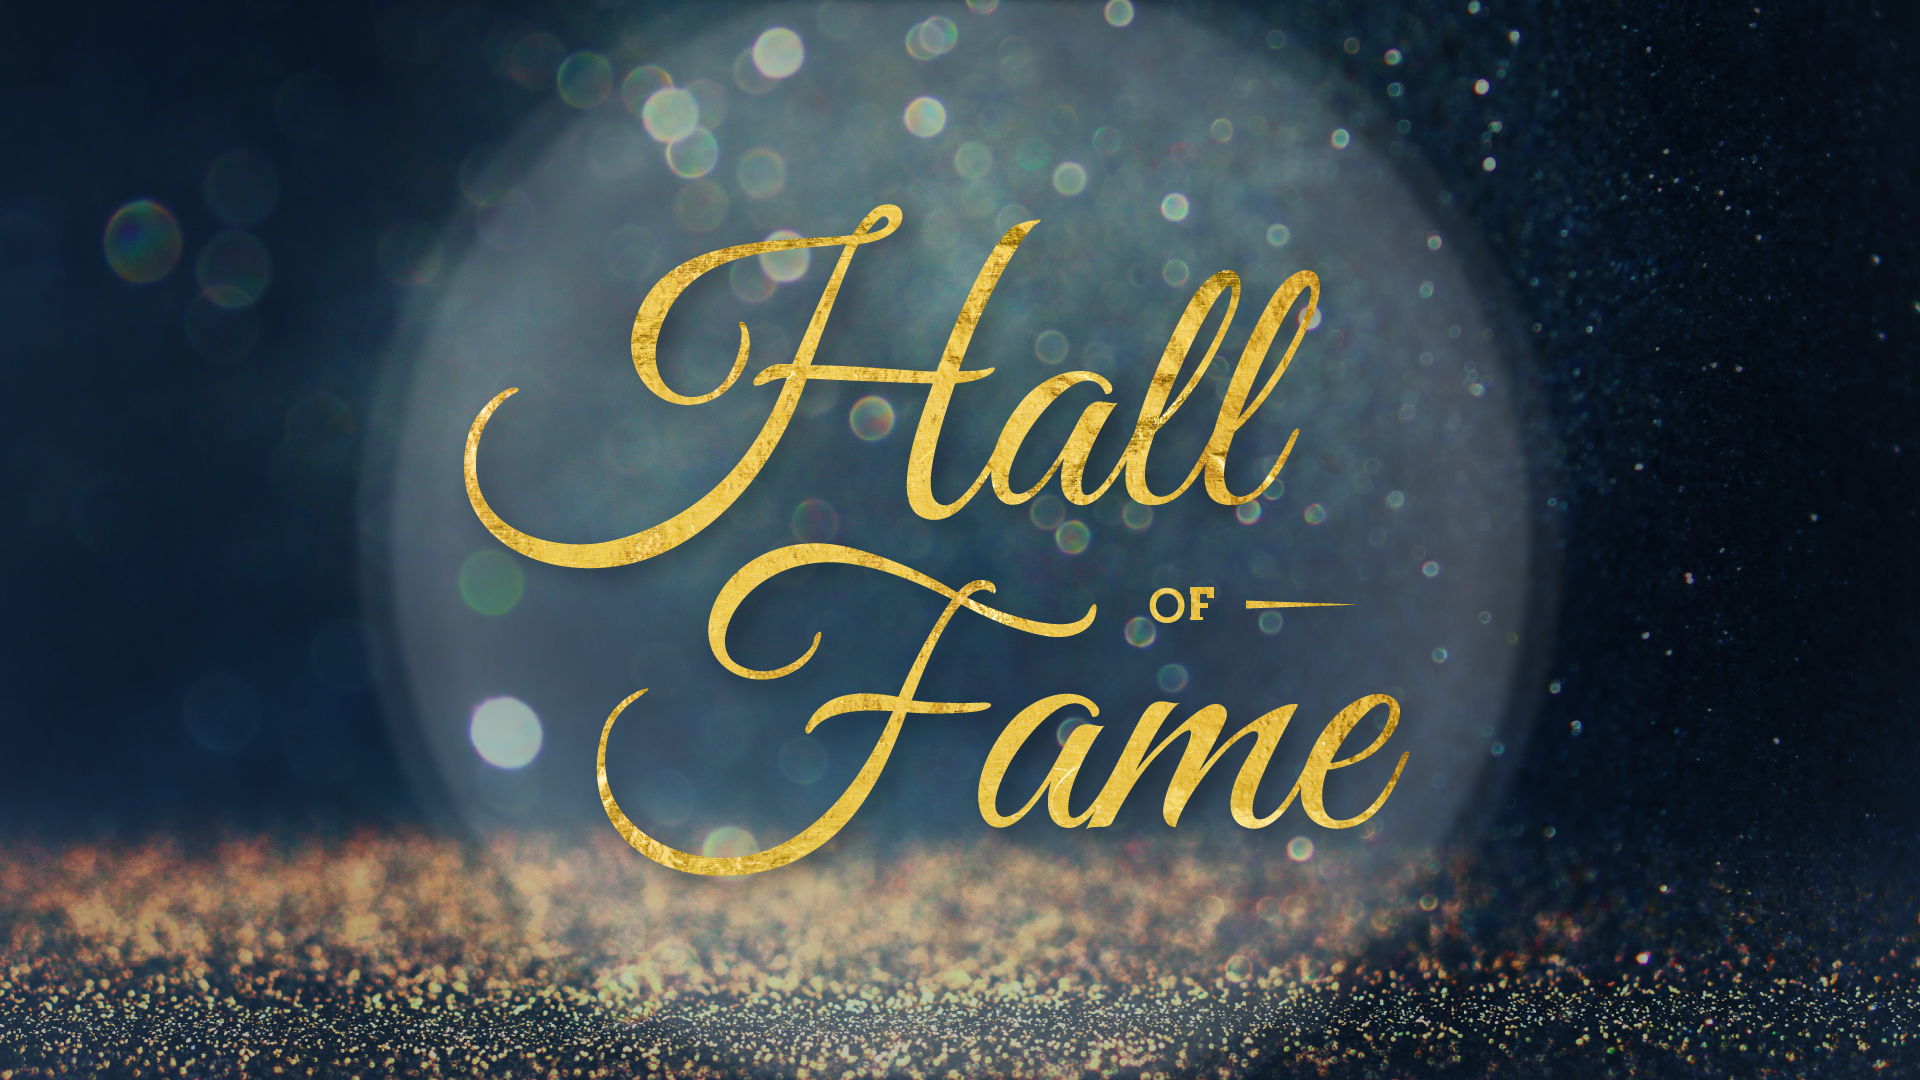 Hall of Fame (Series)